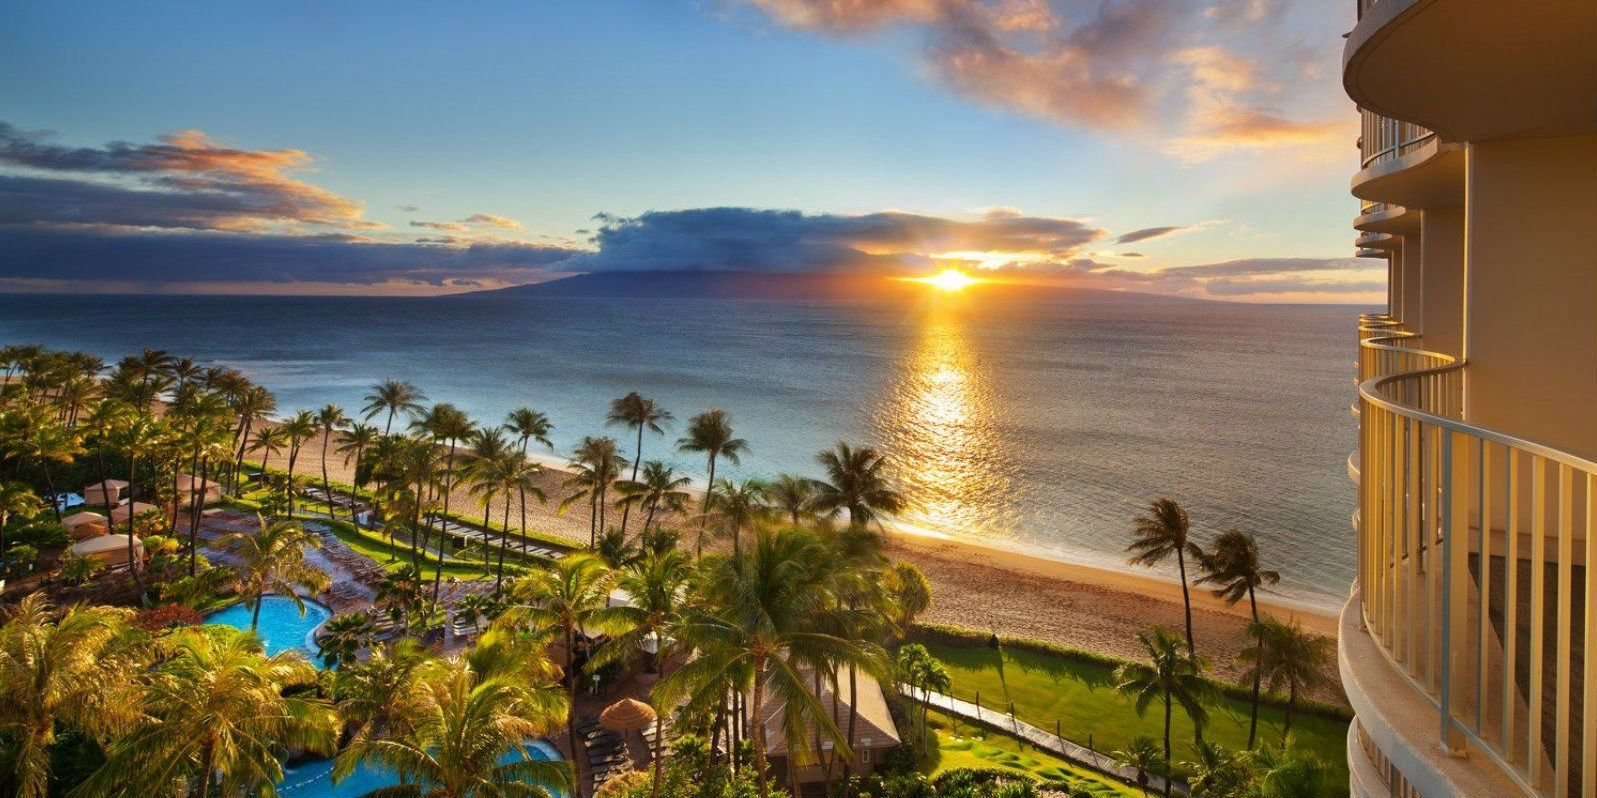 Vacations  All Inclusive Vacations Deals  Maui resorts